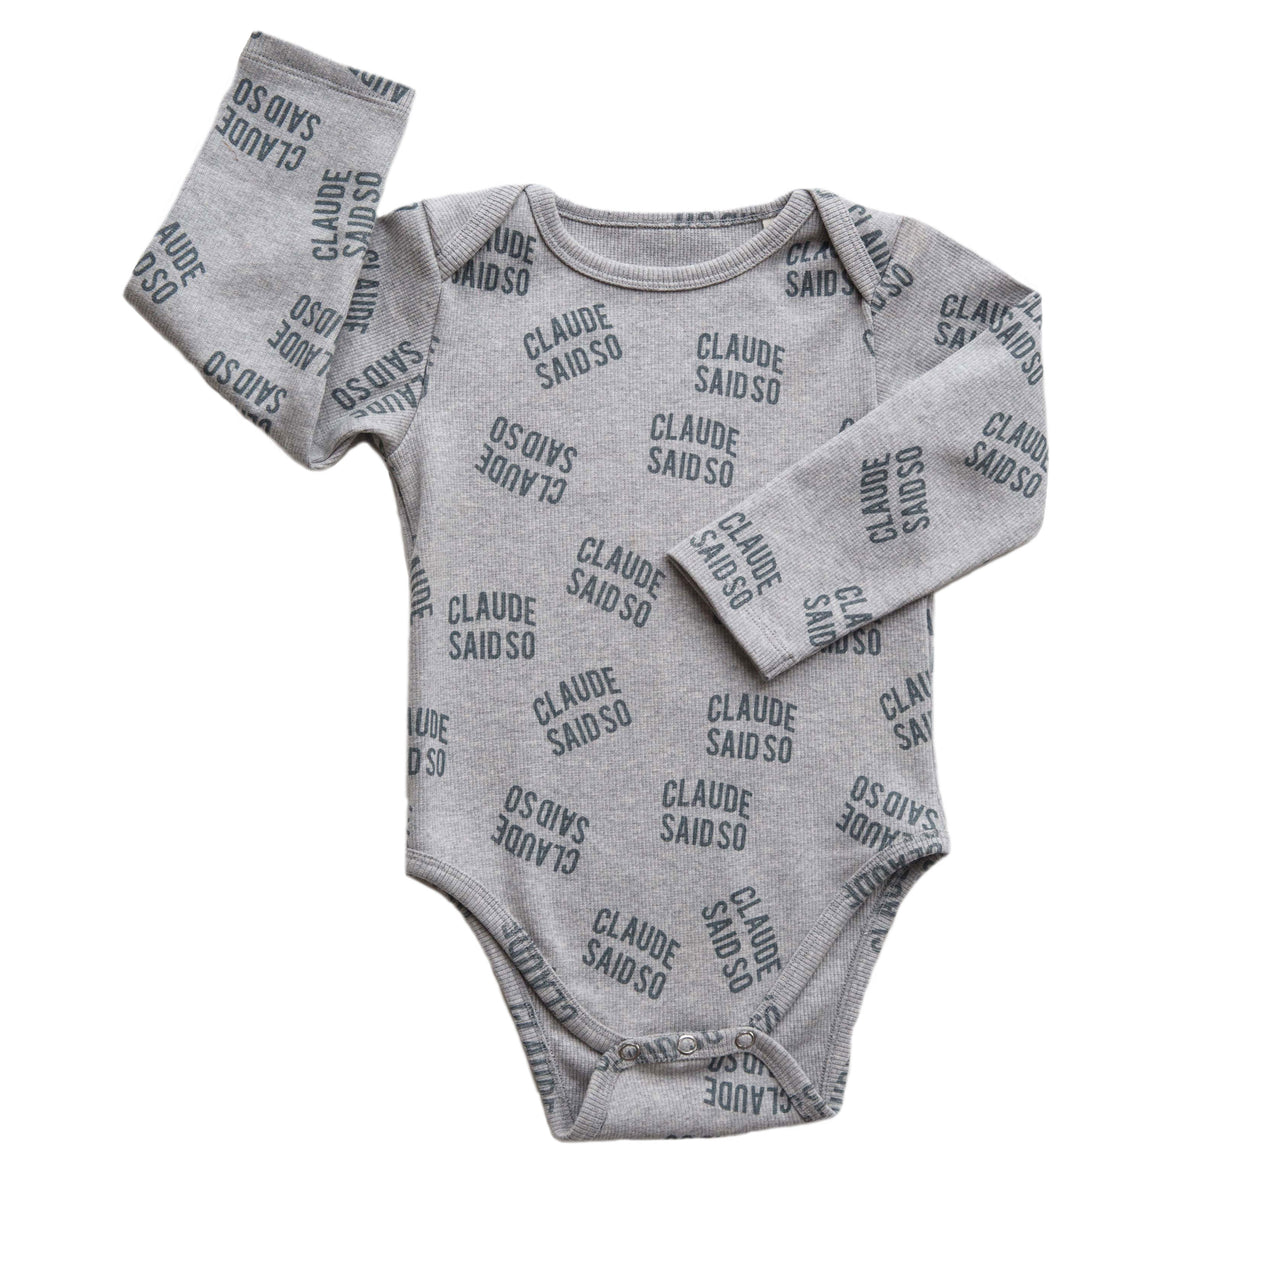 Claude and Co - Grey Rib Claude Said So Bodysuit Unisex - Claude & Co